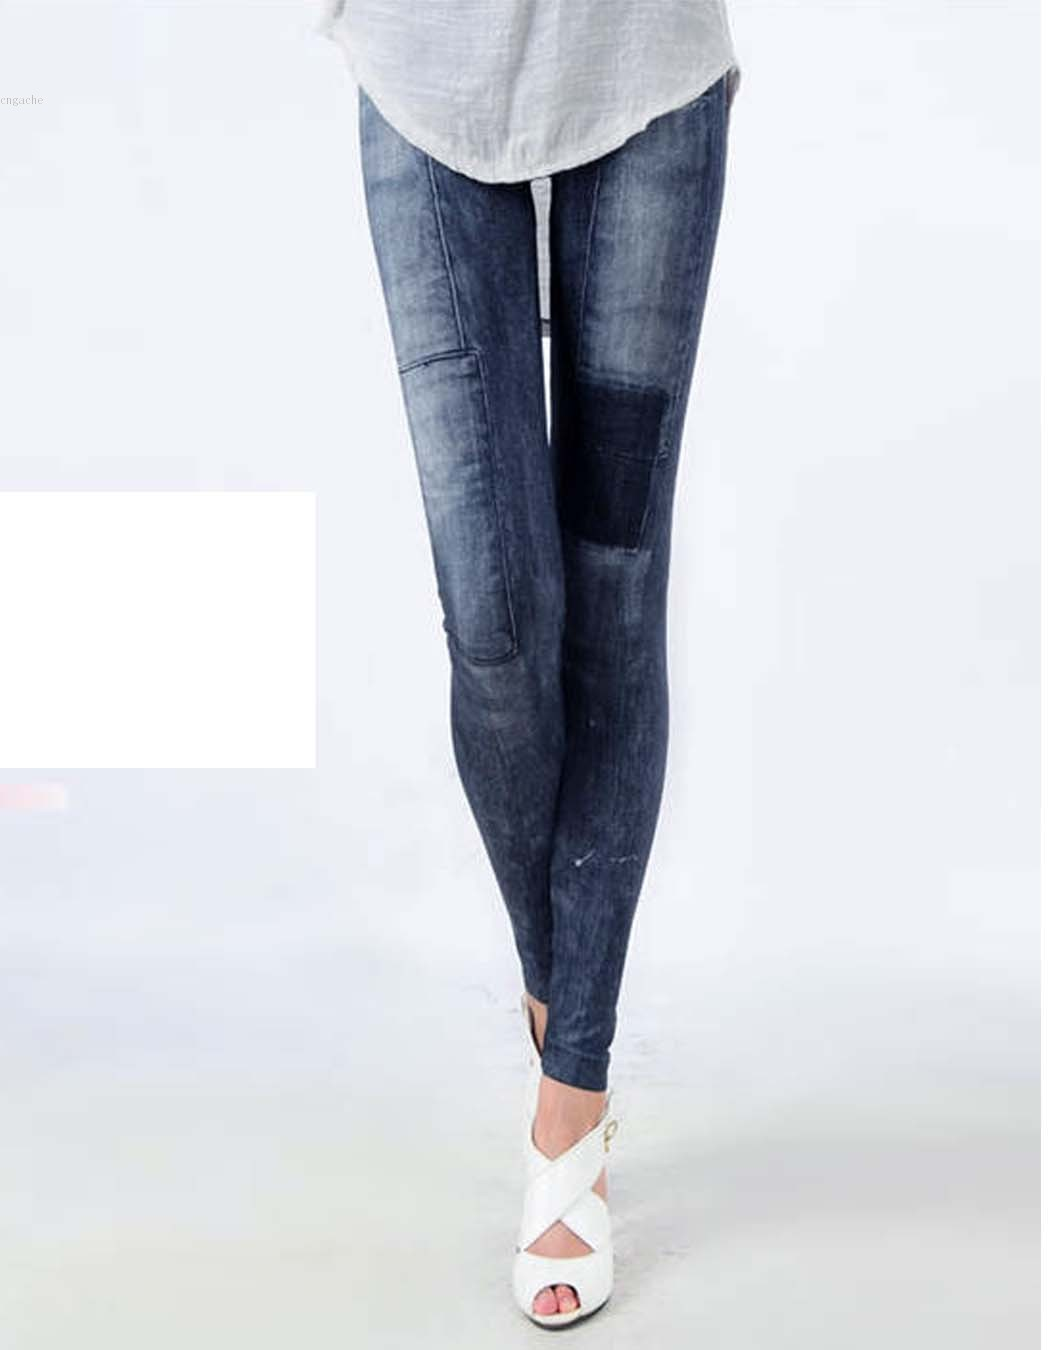 Cheap Skinny Leg Jeans Promotion-Shop for Promotional Cheap Skinny ...